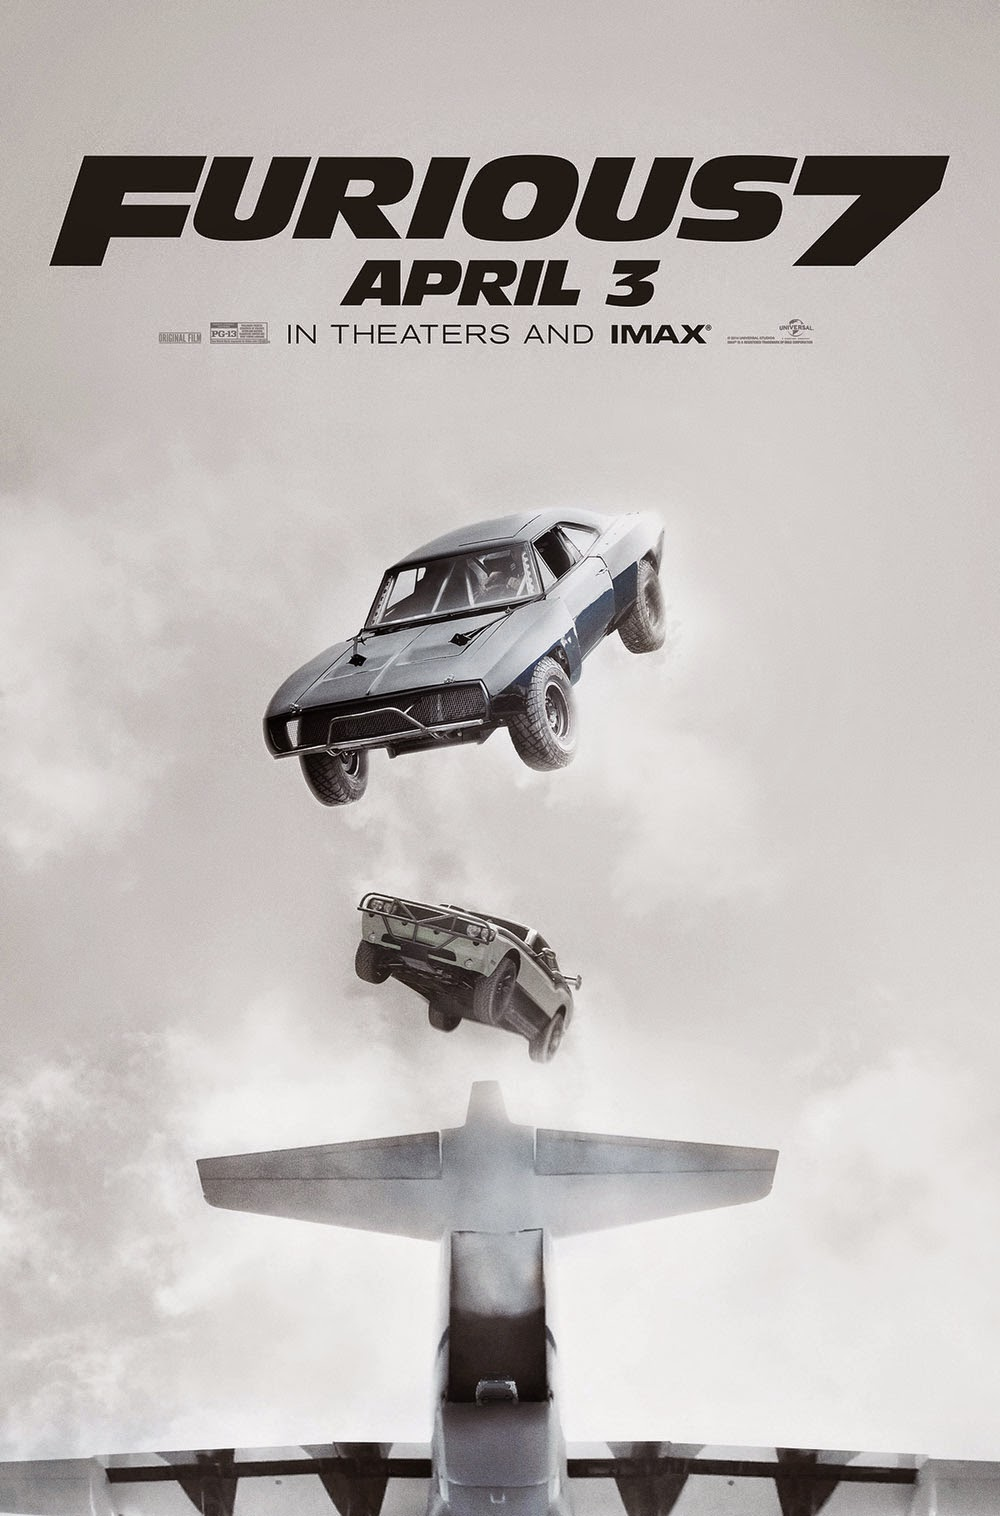 The Fast And Furious Series Is All About Cars Vin Diesel Usually Those Need To Be On A Road But By Looks Of Last Trailer For 7